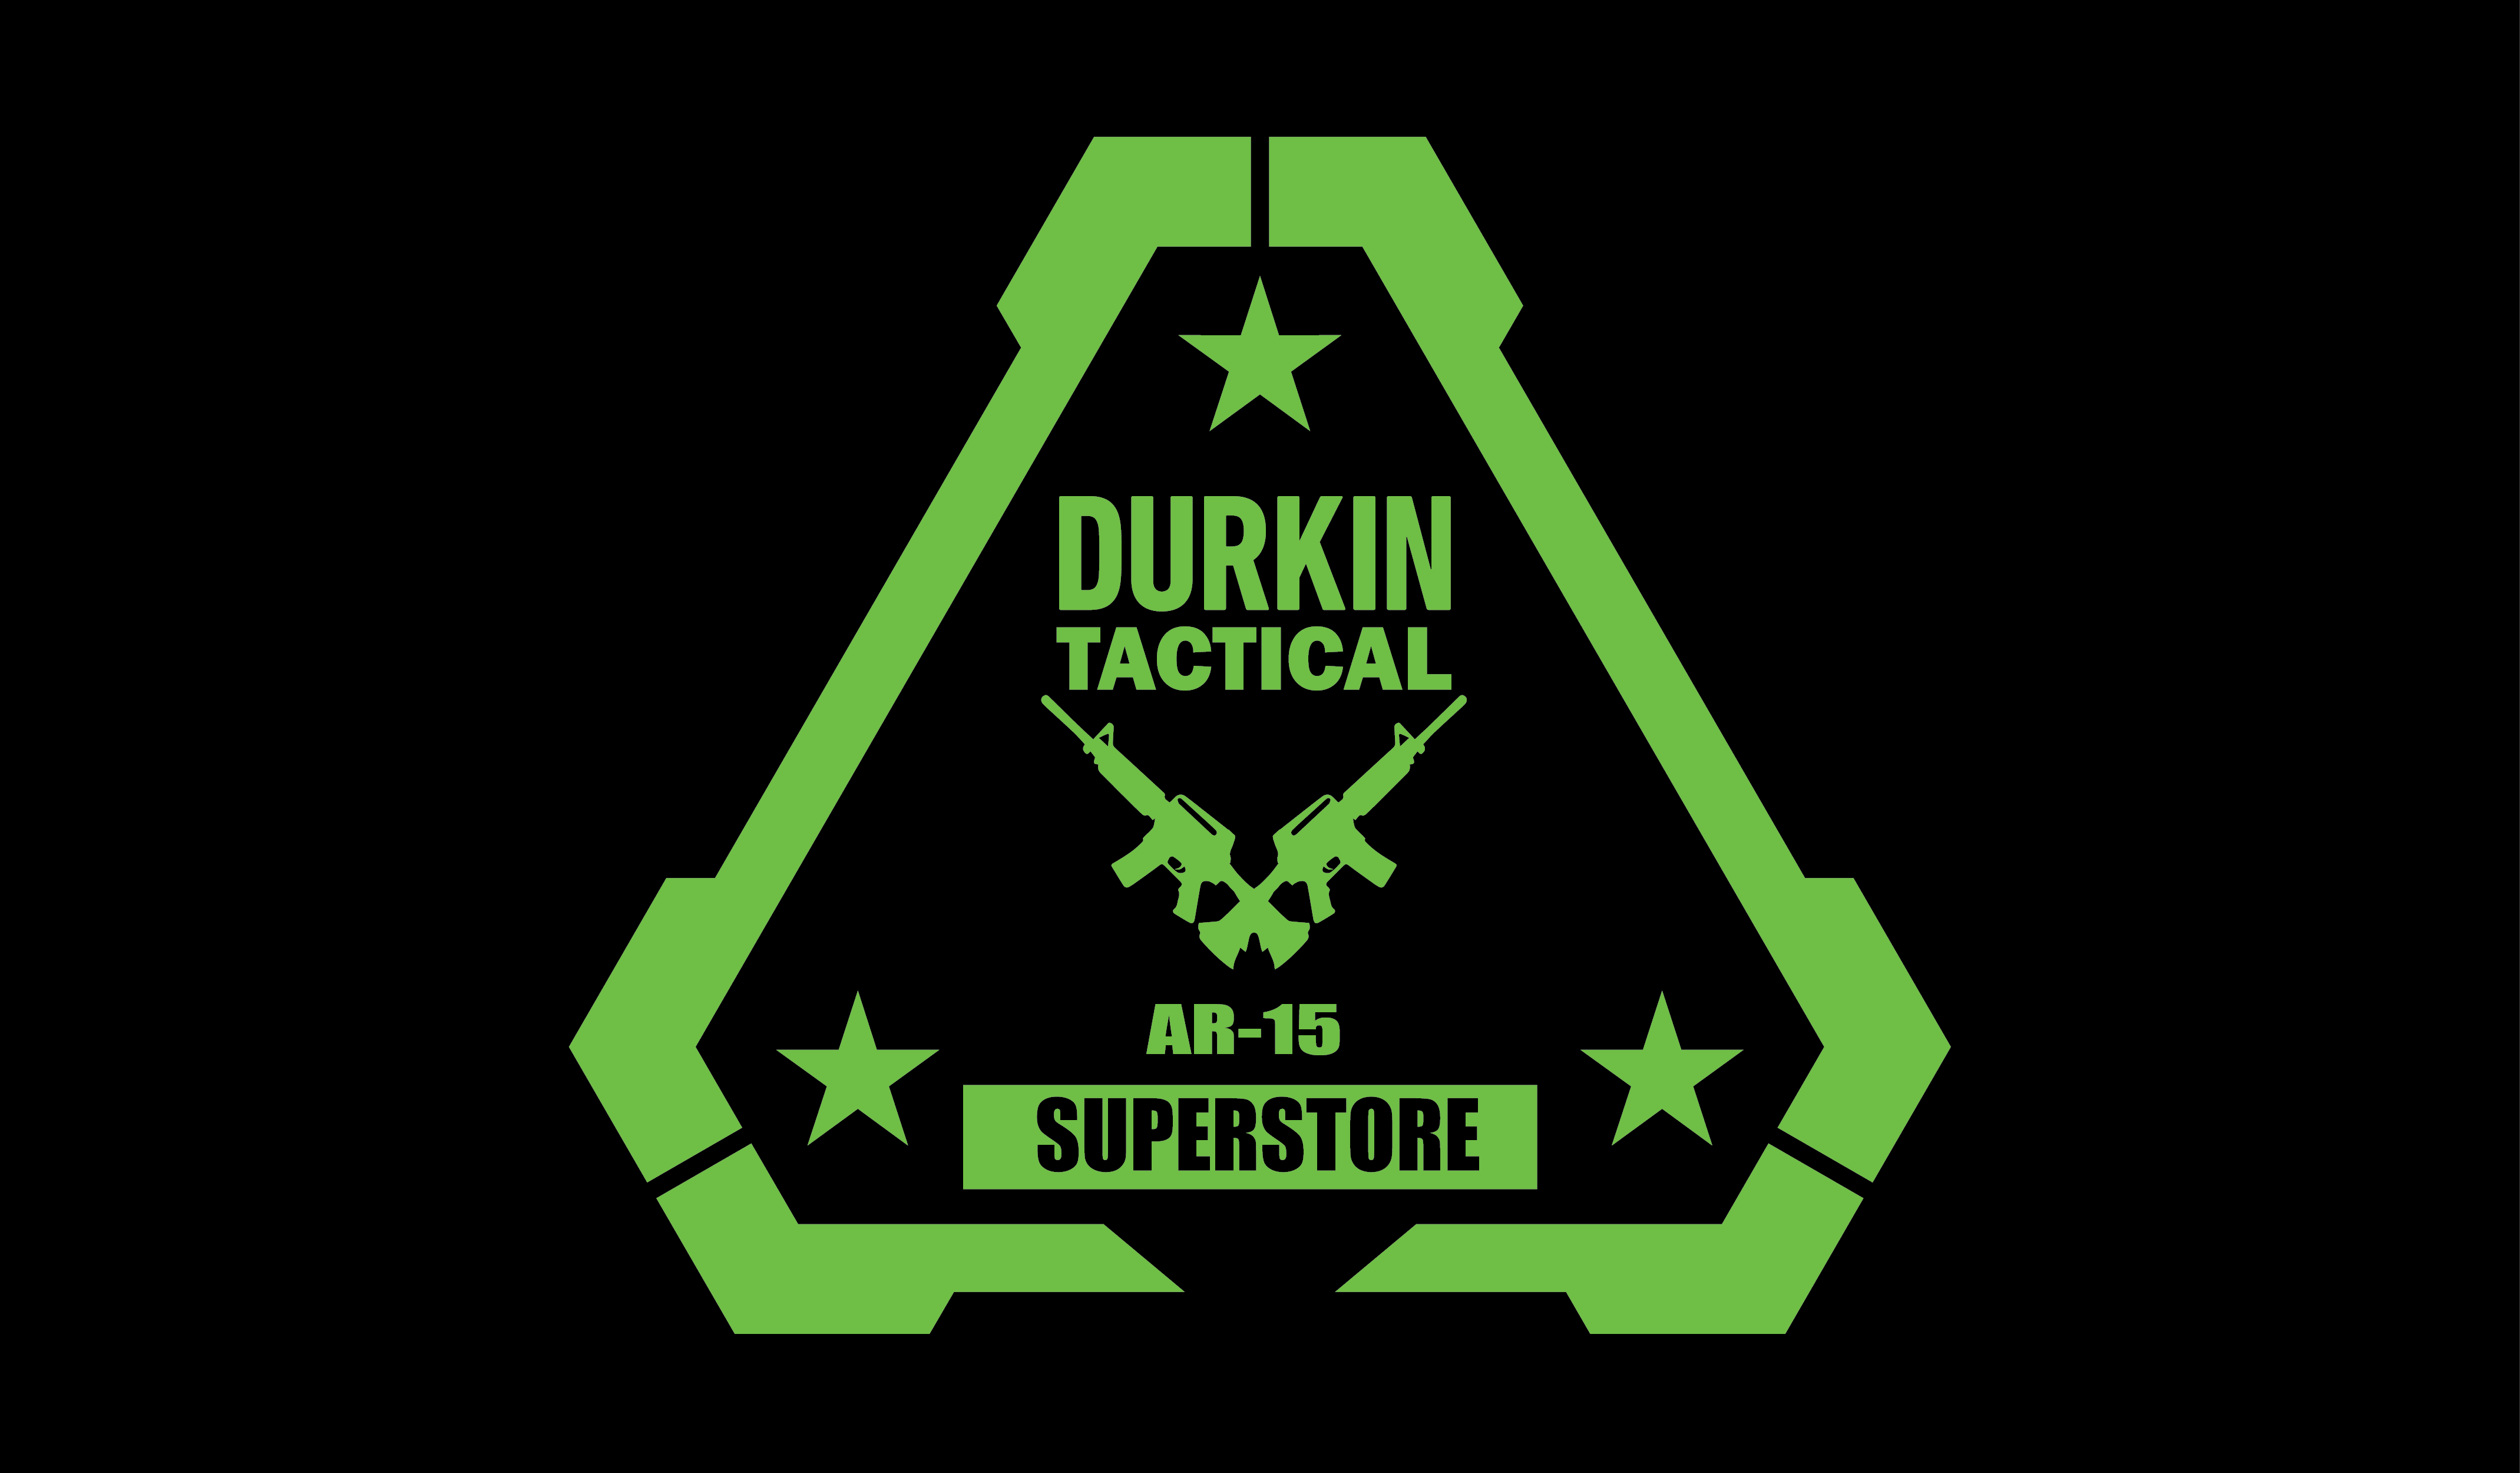 Durkin Tactical, LLC